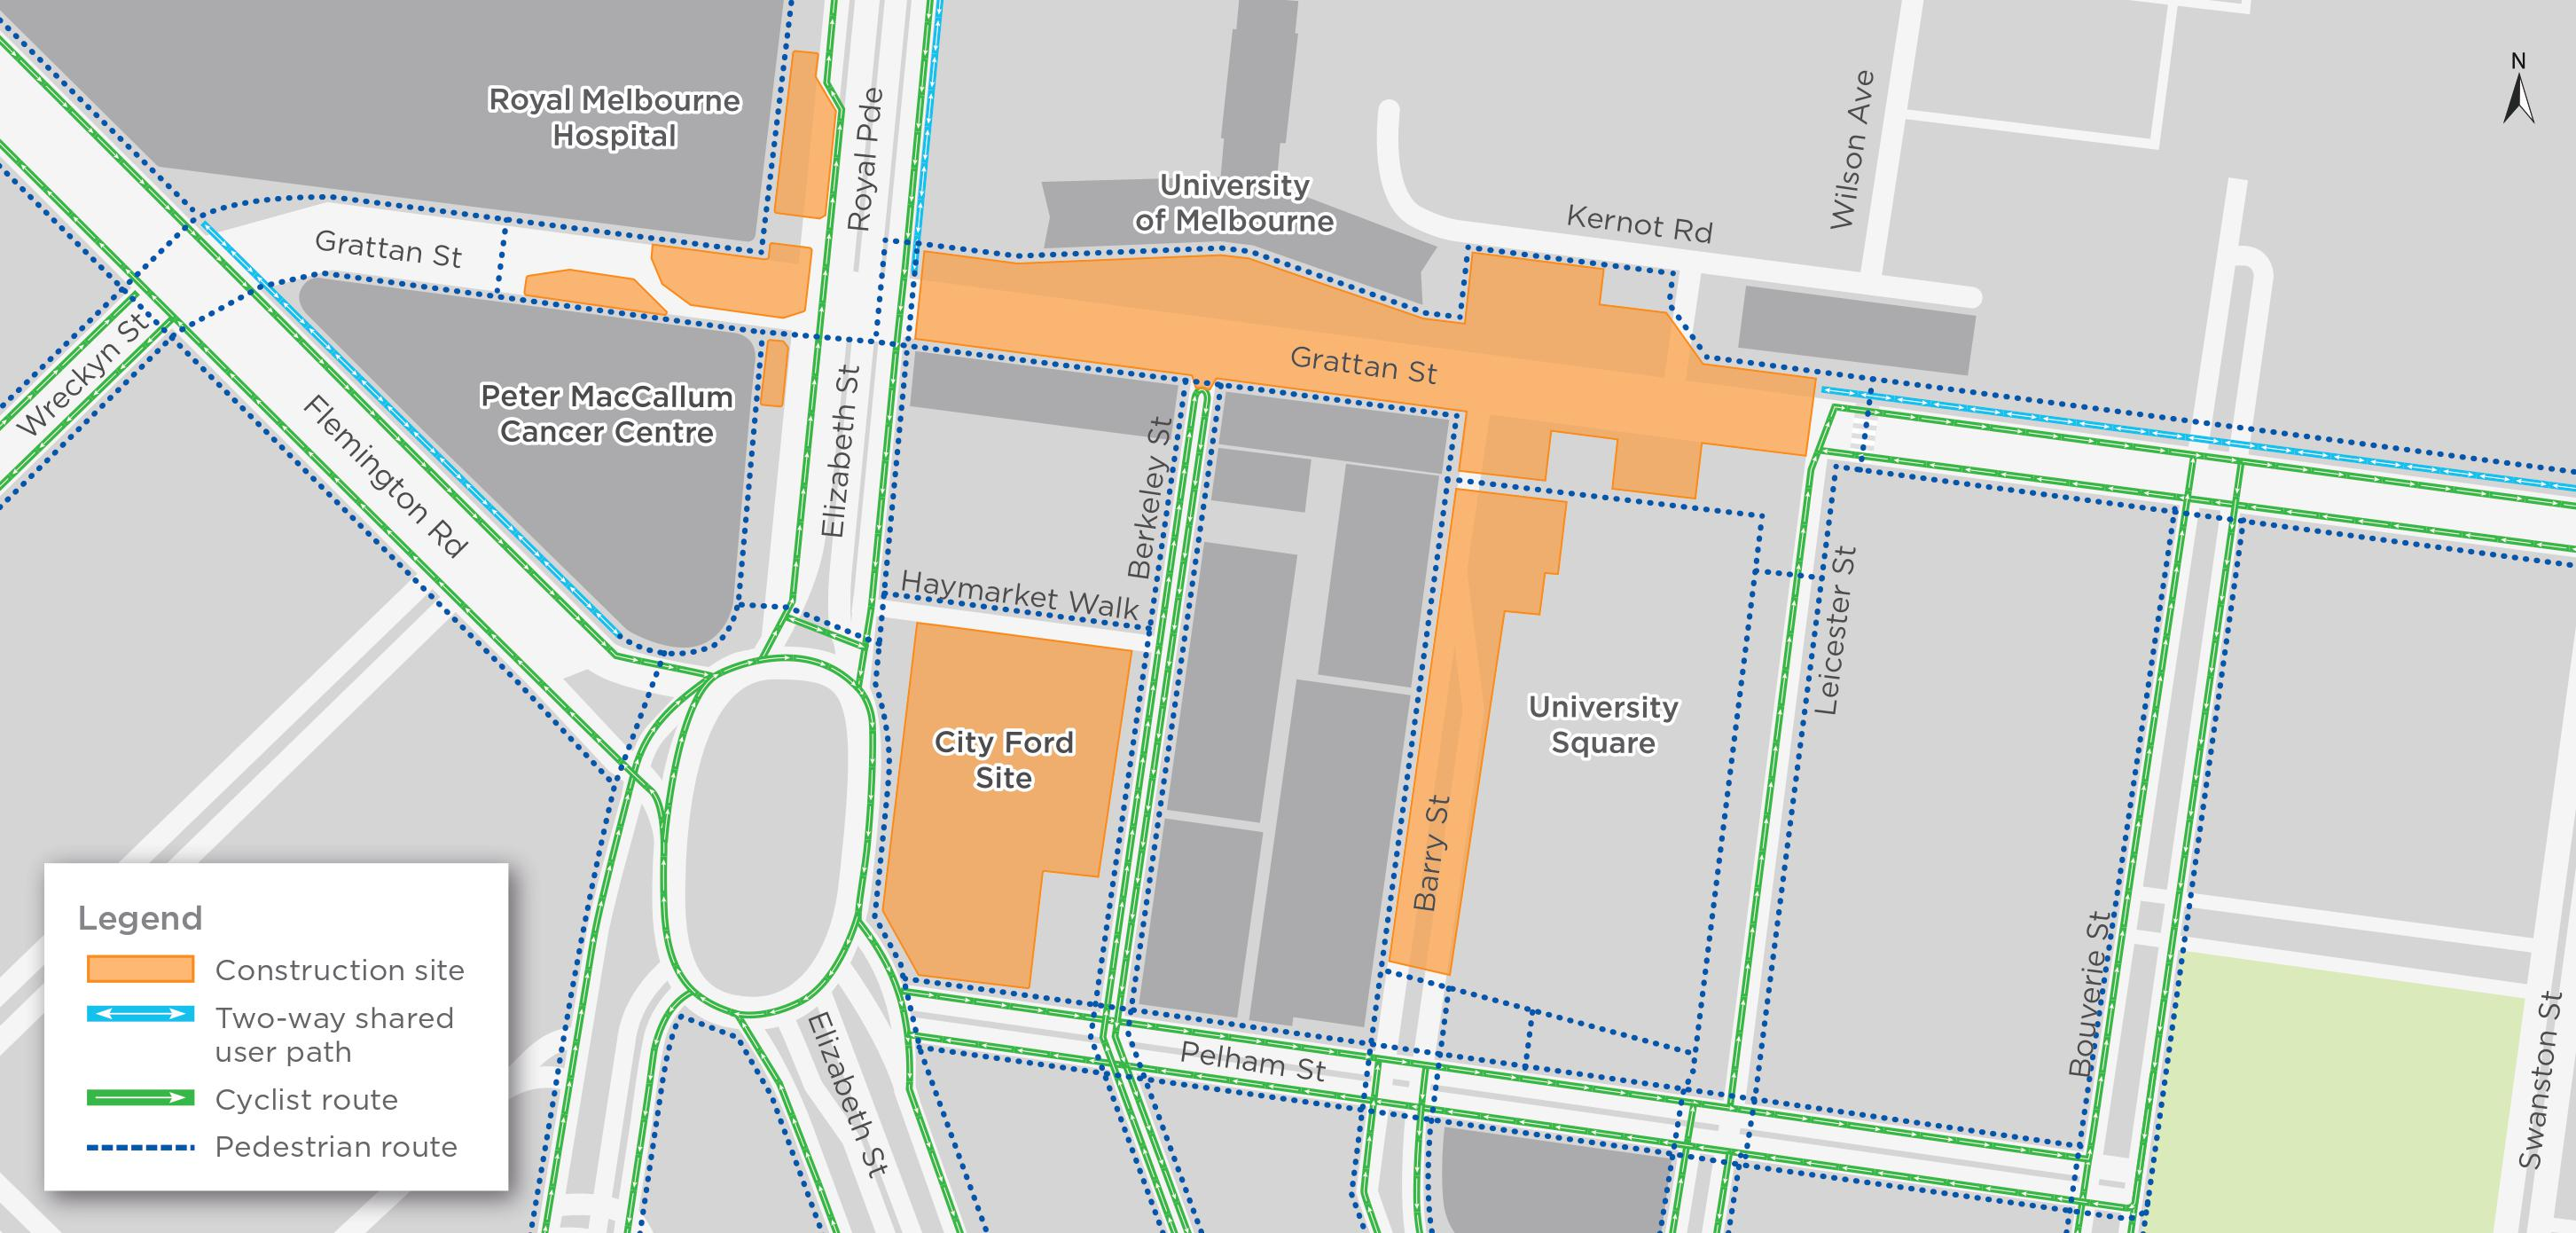 Map for Parkville pedestrian and cyclist pathways